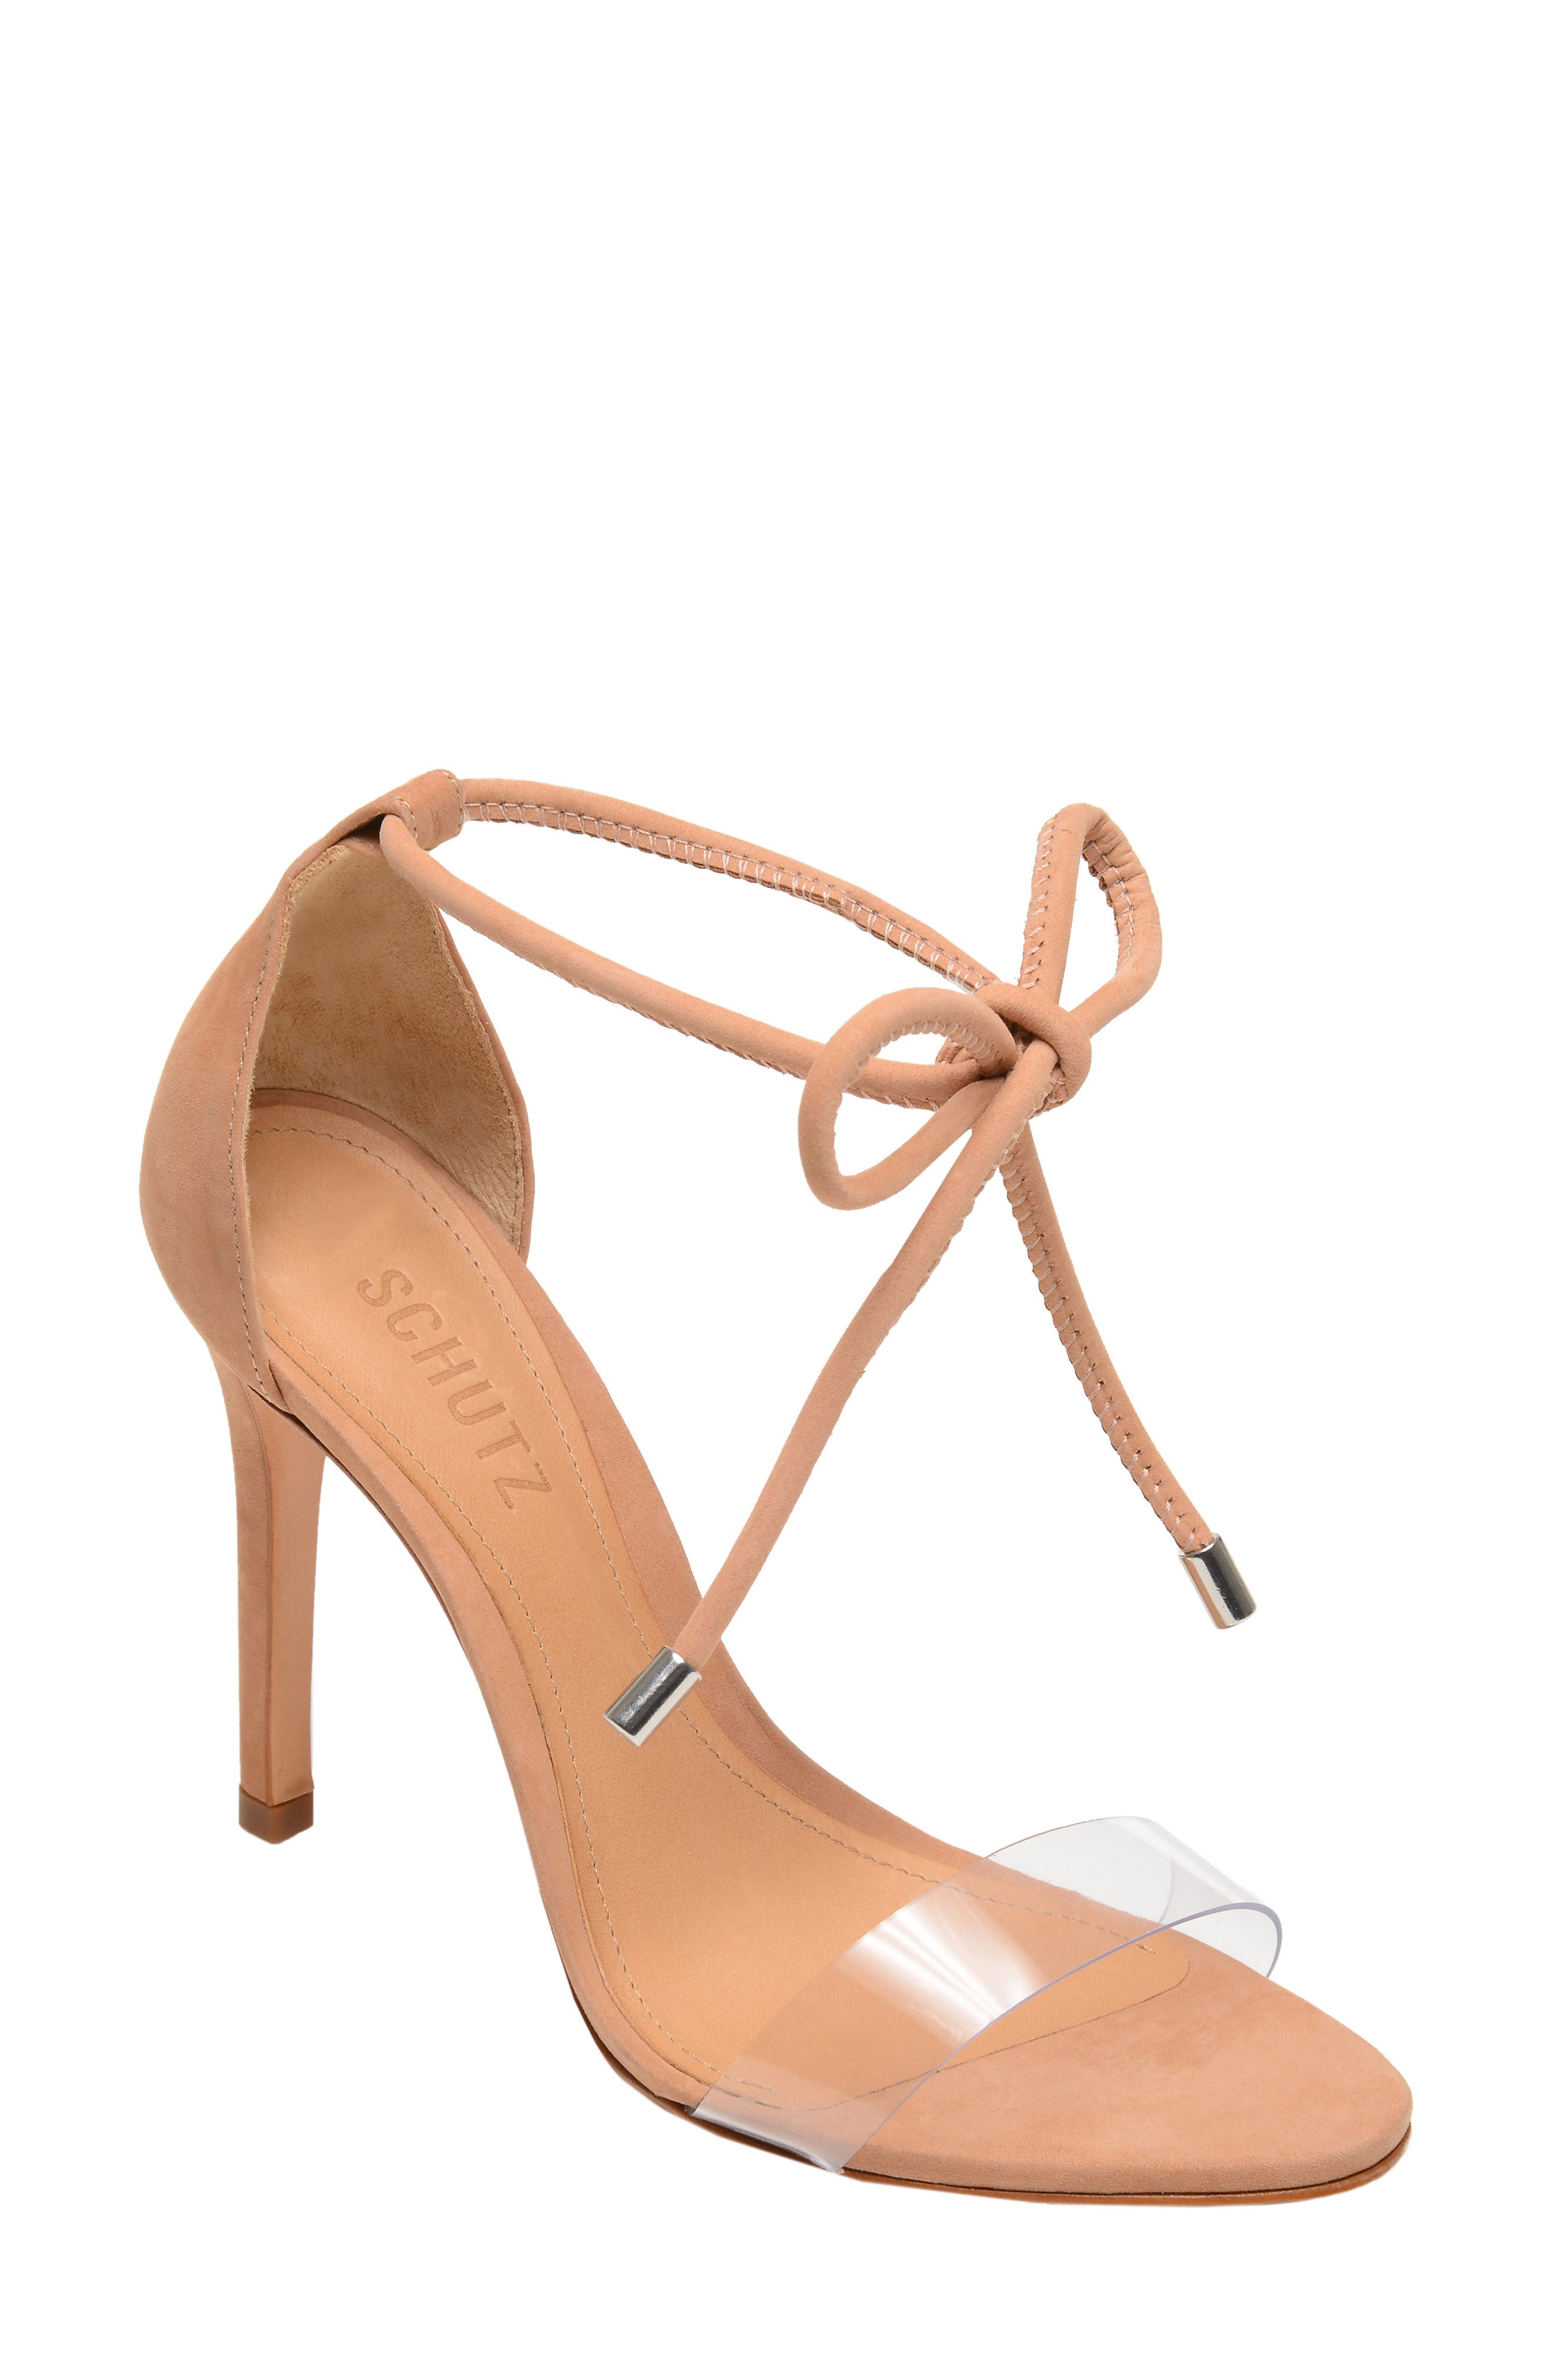 Shutz Monique Ankle Tie Sandal- Beige